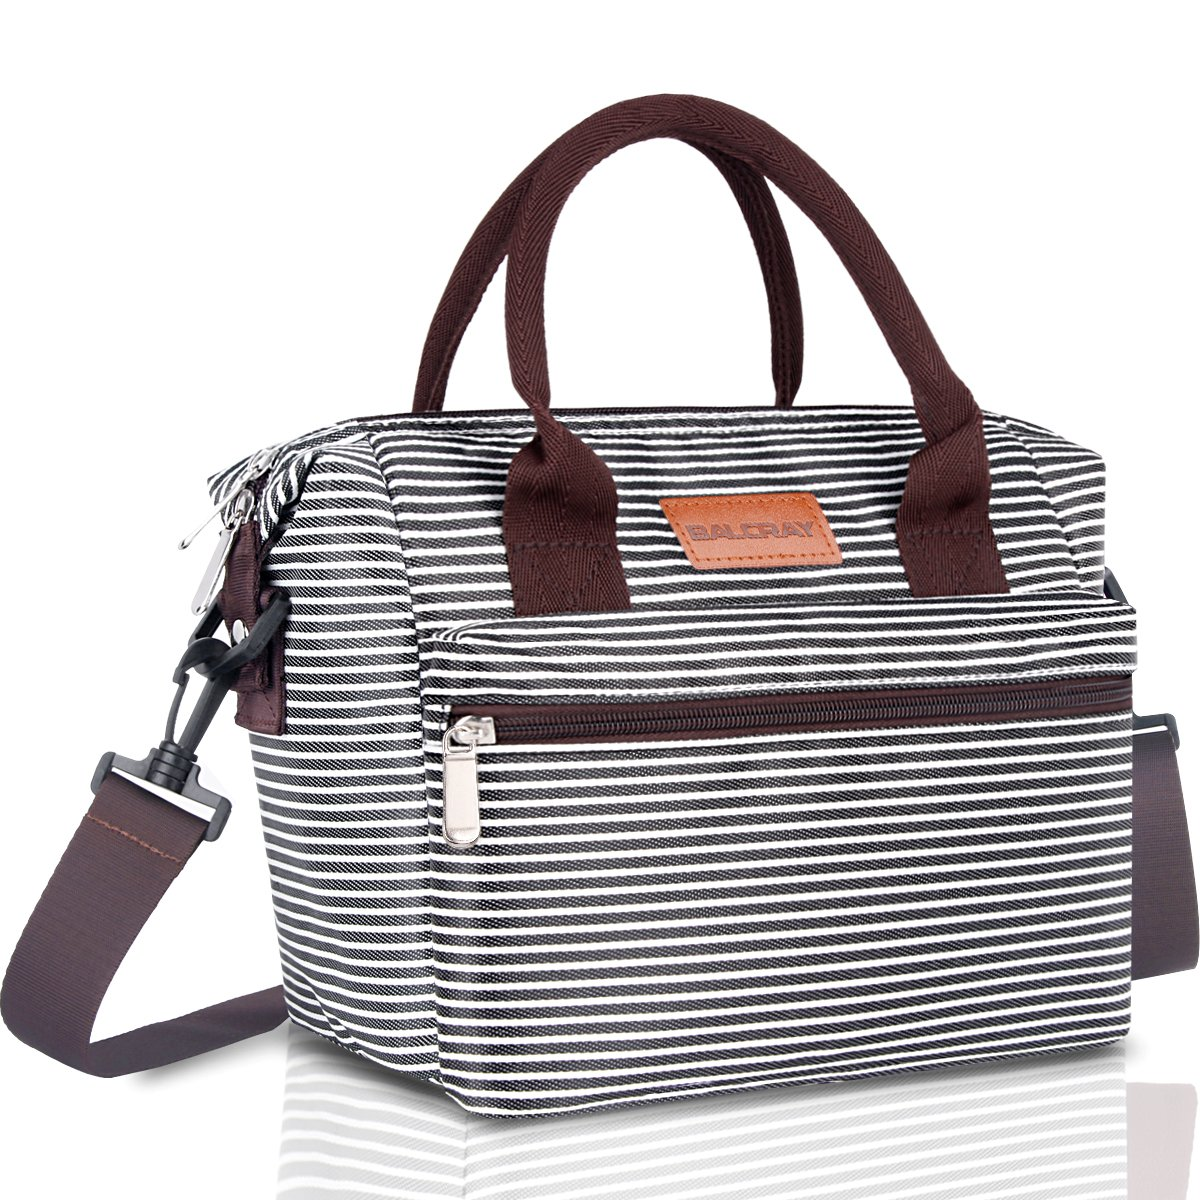 BALORAY Lunch Bag for Women Insulated Lunch Box with Adjustable Shoulder Strap, Water-Resistant Leakproof Cooler Lunch Tote Bag for Work/School/Picnic(Black& White Strip )